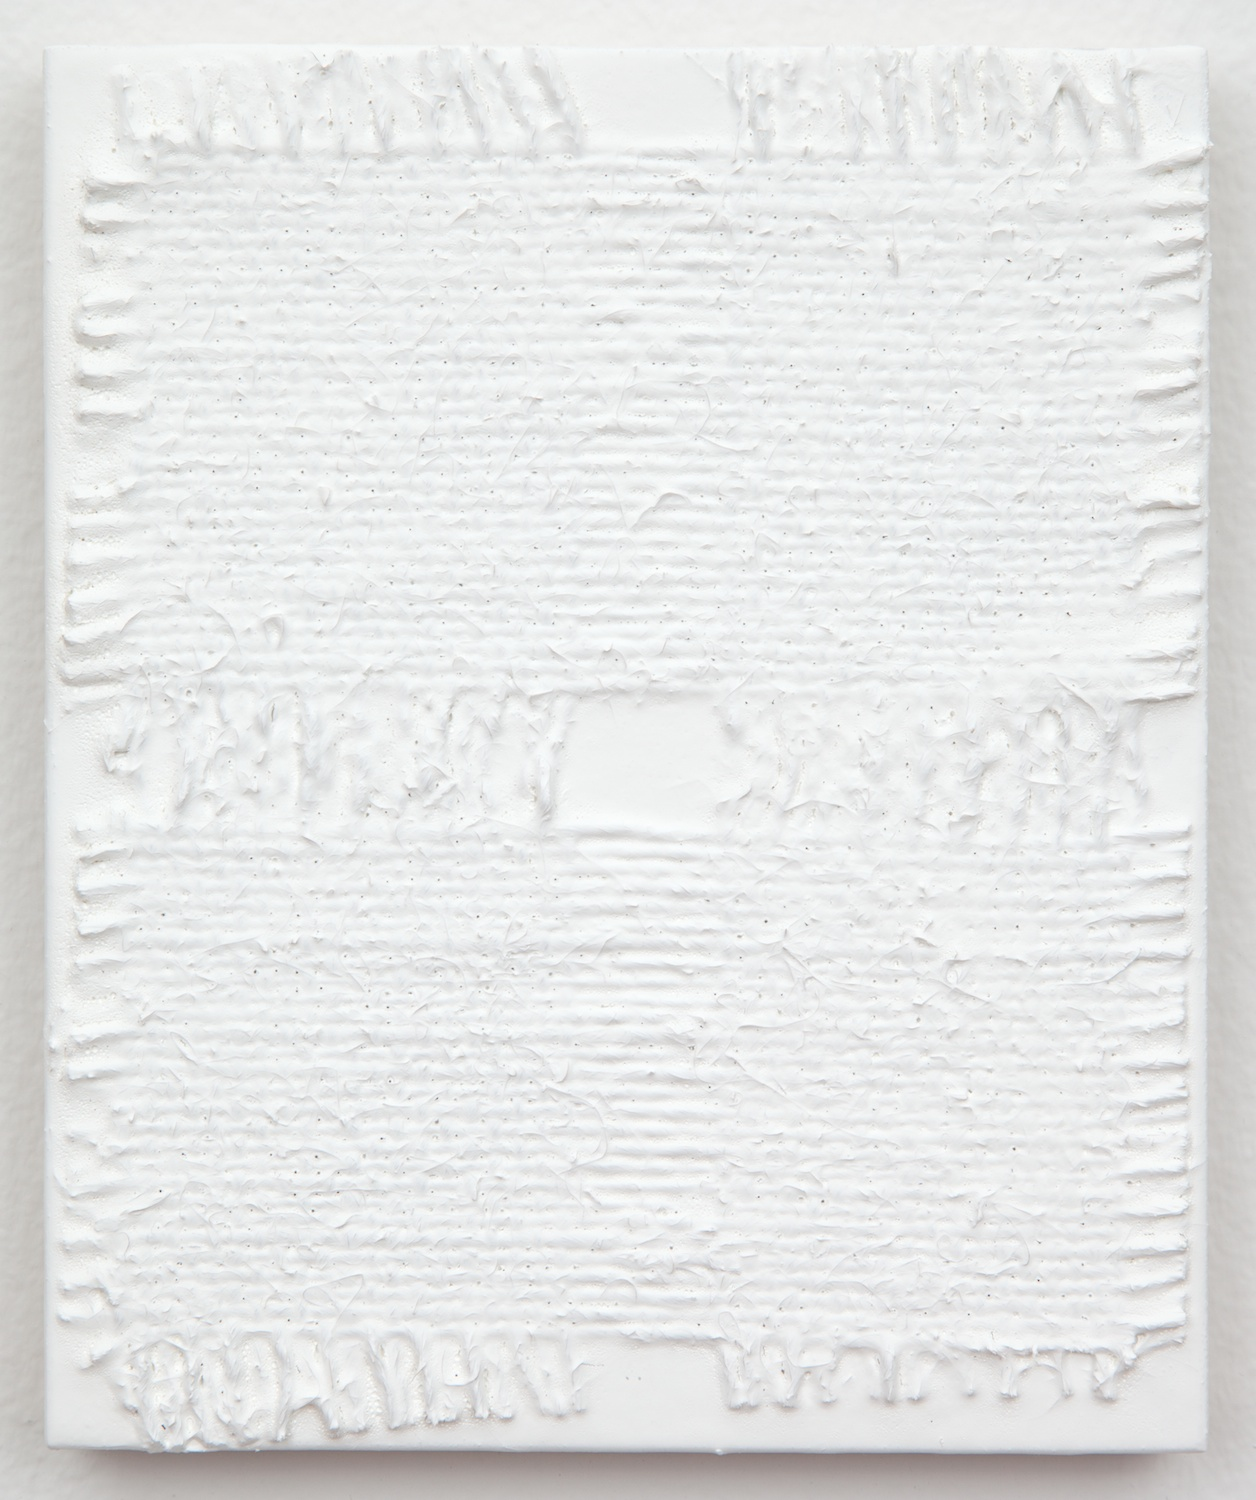 Michelle Grabner  Untitled  2013 Burlap and gesso on panel 6h x 5w in MGrab364